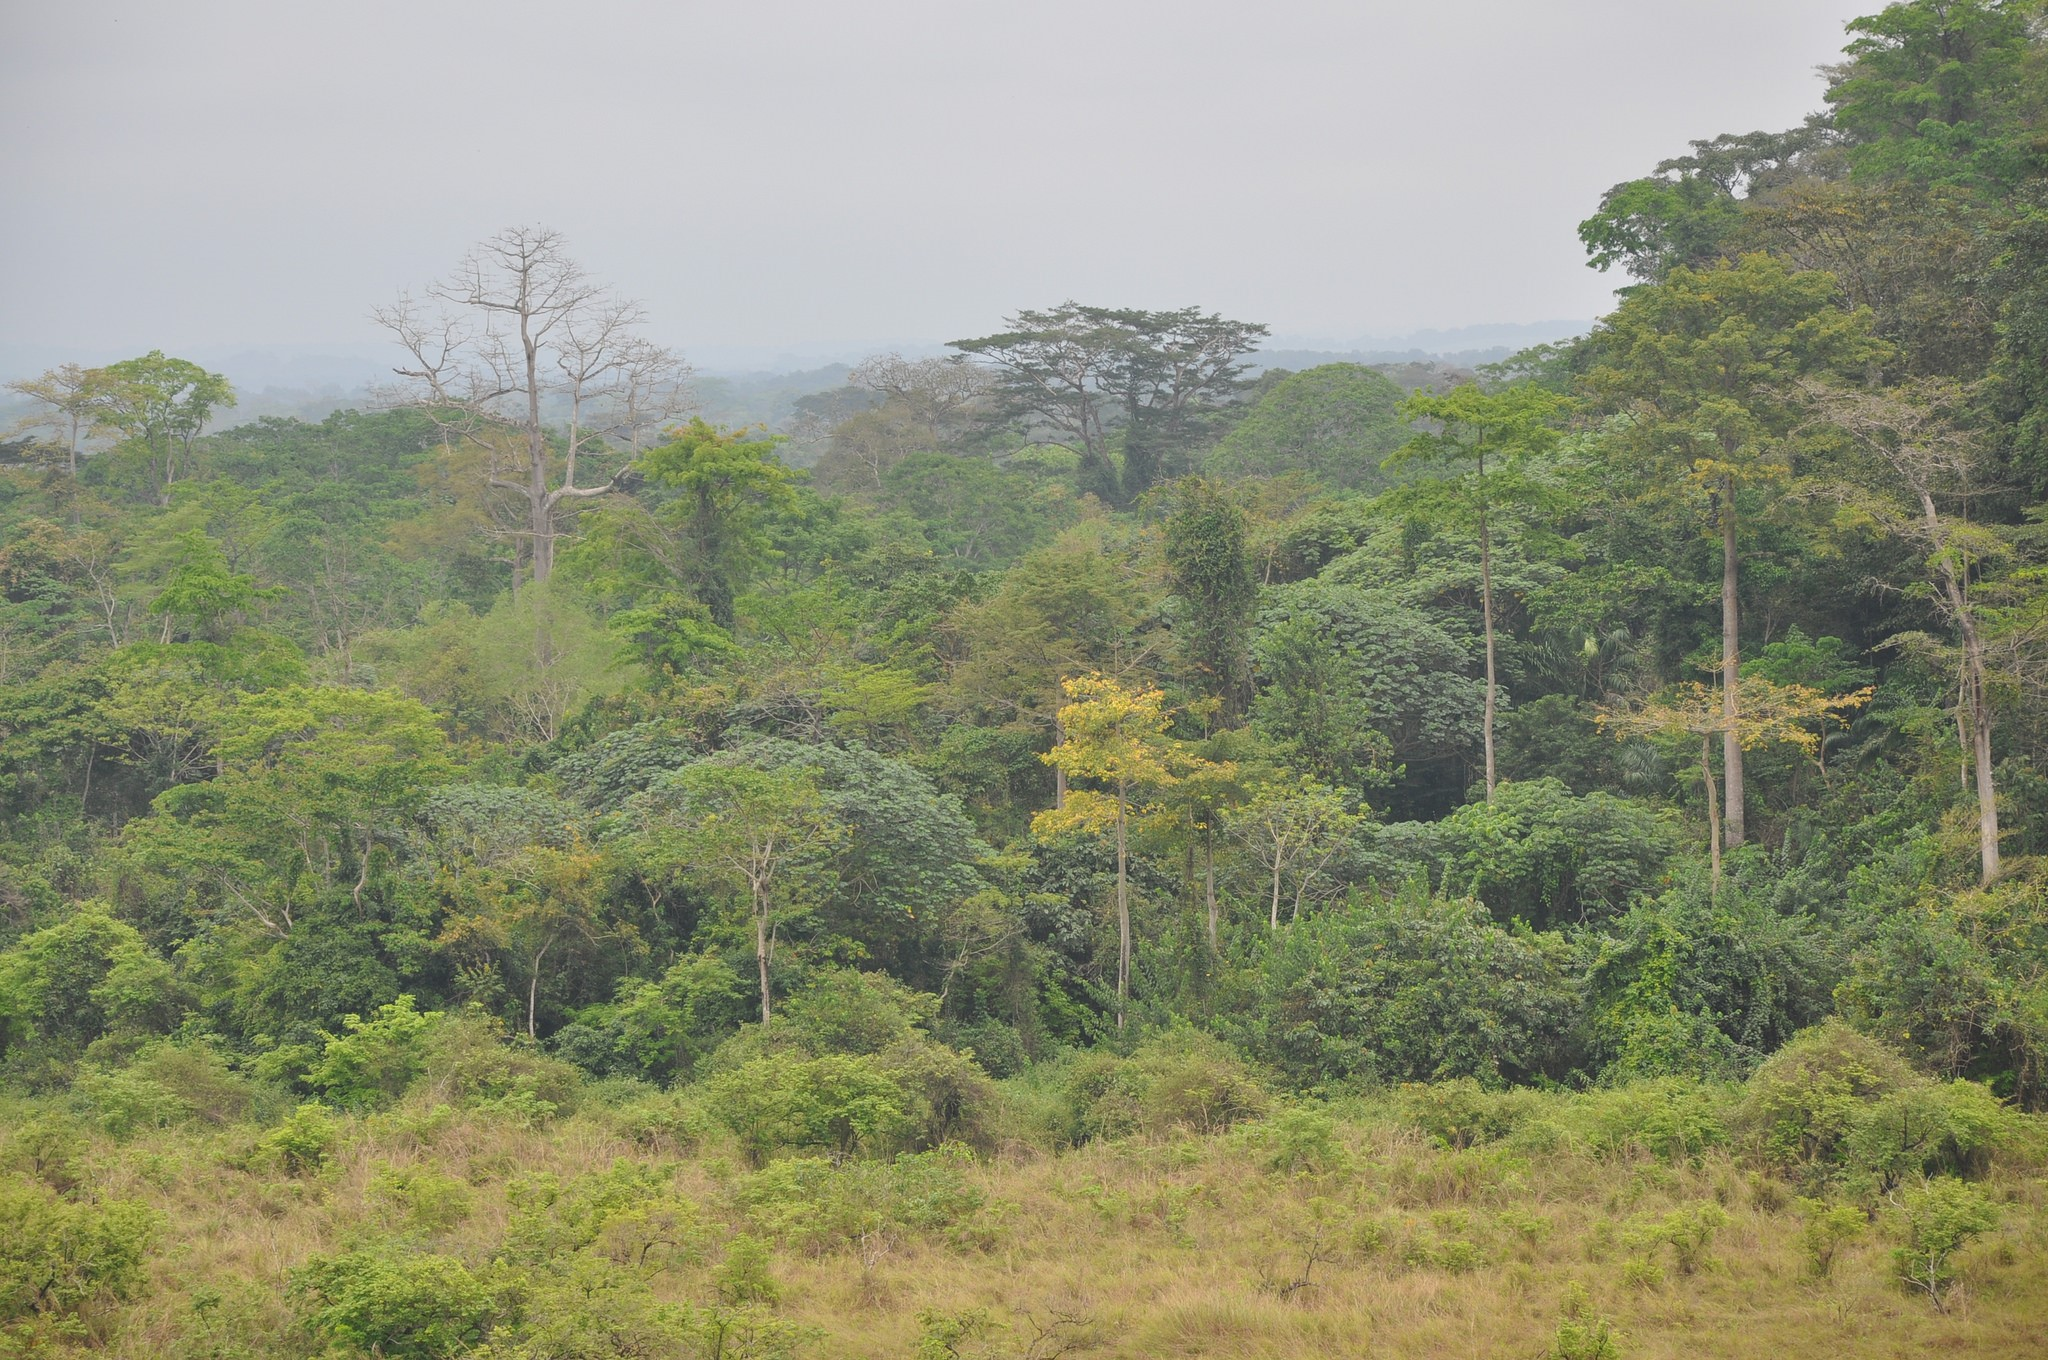 <p>The Olam concession conserves secondary forests identified as having High Conservation Value. Photo by The Forests Dialogue</p>